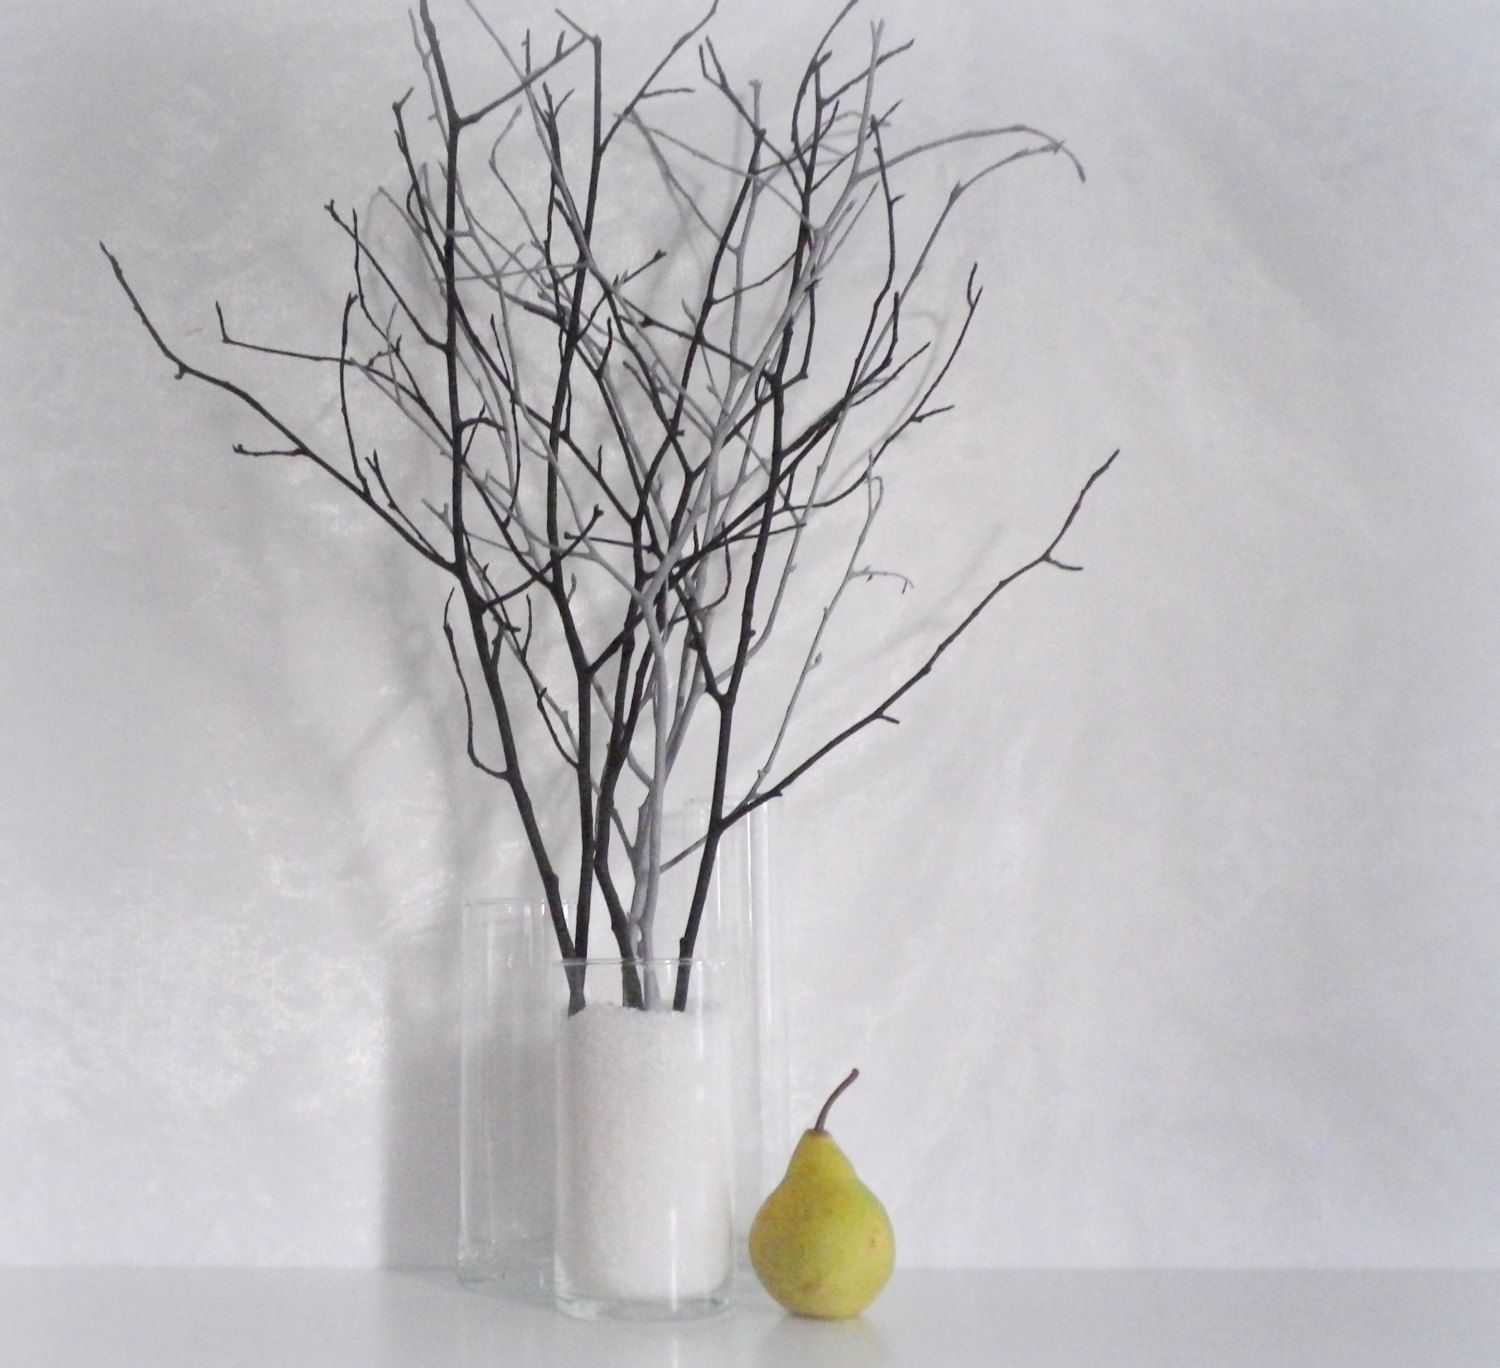 Woodland Home Decor Branches Black Grey Branches Contemporary Decor Decorating Supply Modern Minimalist Decoration Idea Vase Filler European Home Decor Branch Decor Minimalist Decor